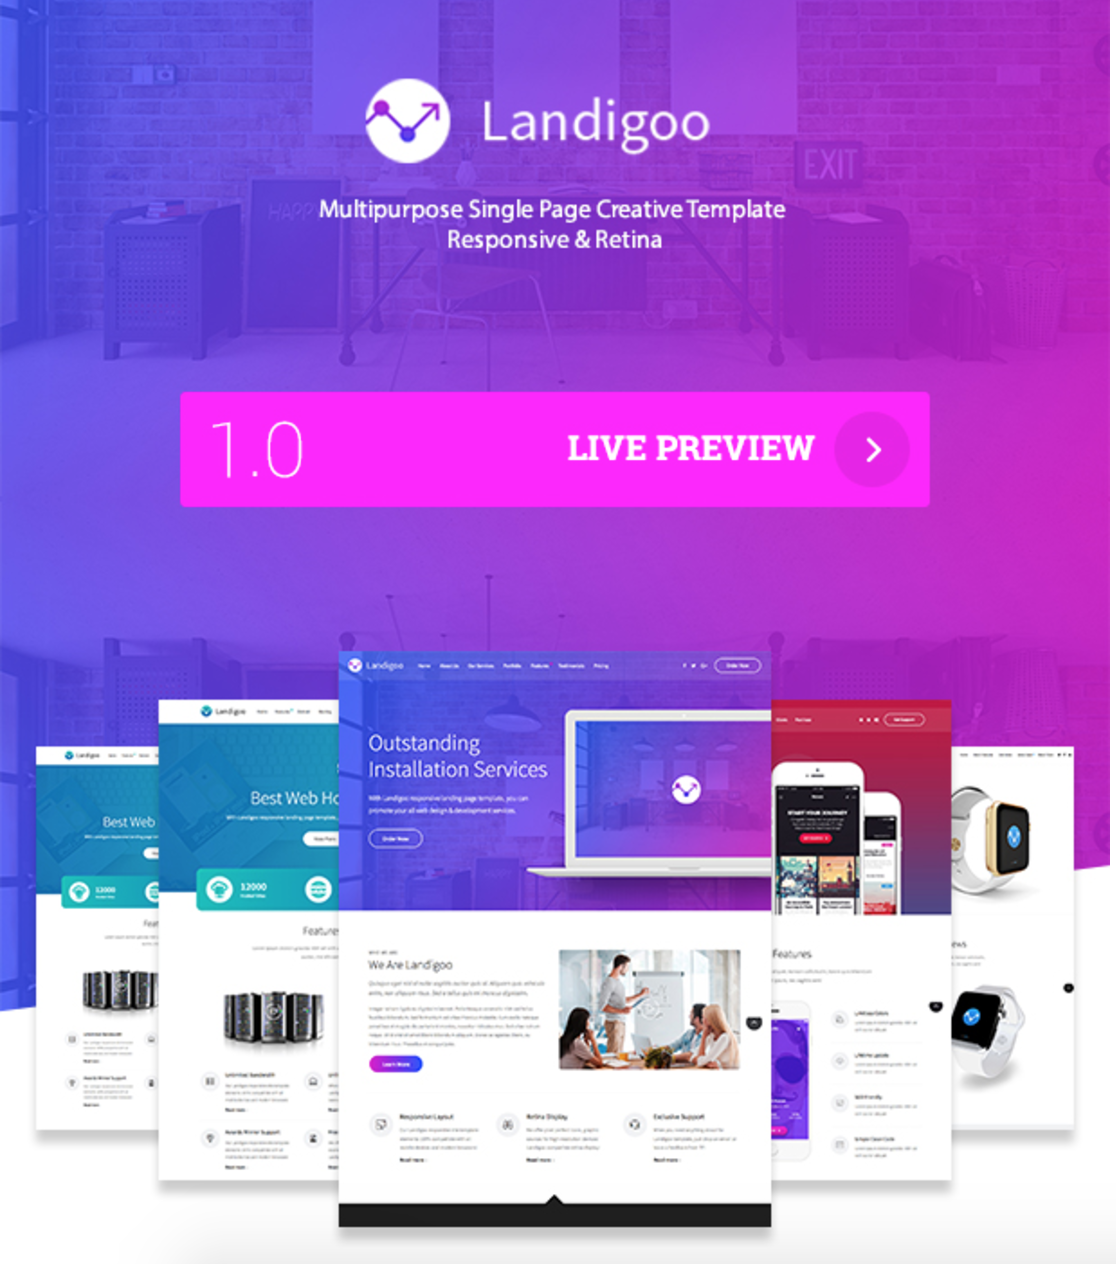 Landigoo Marketing Page